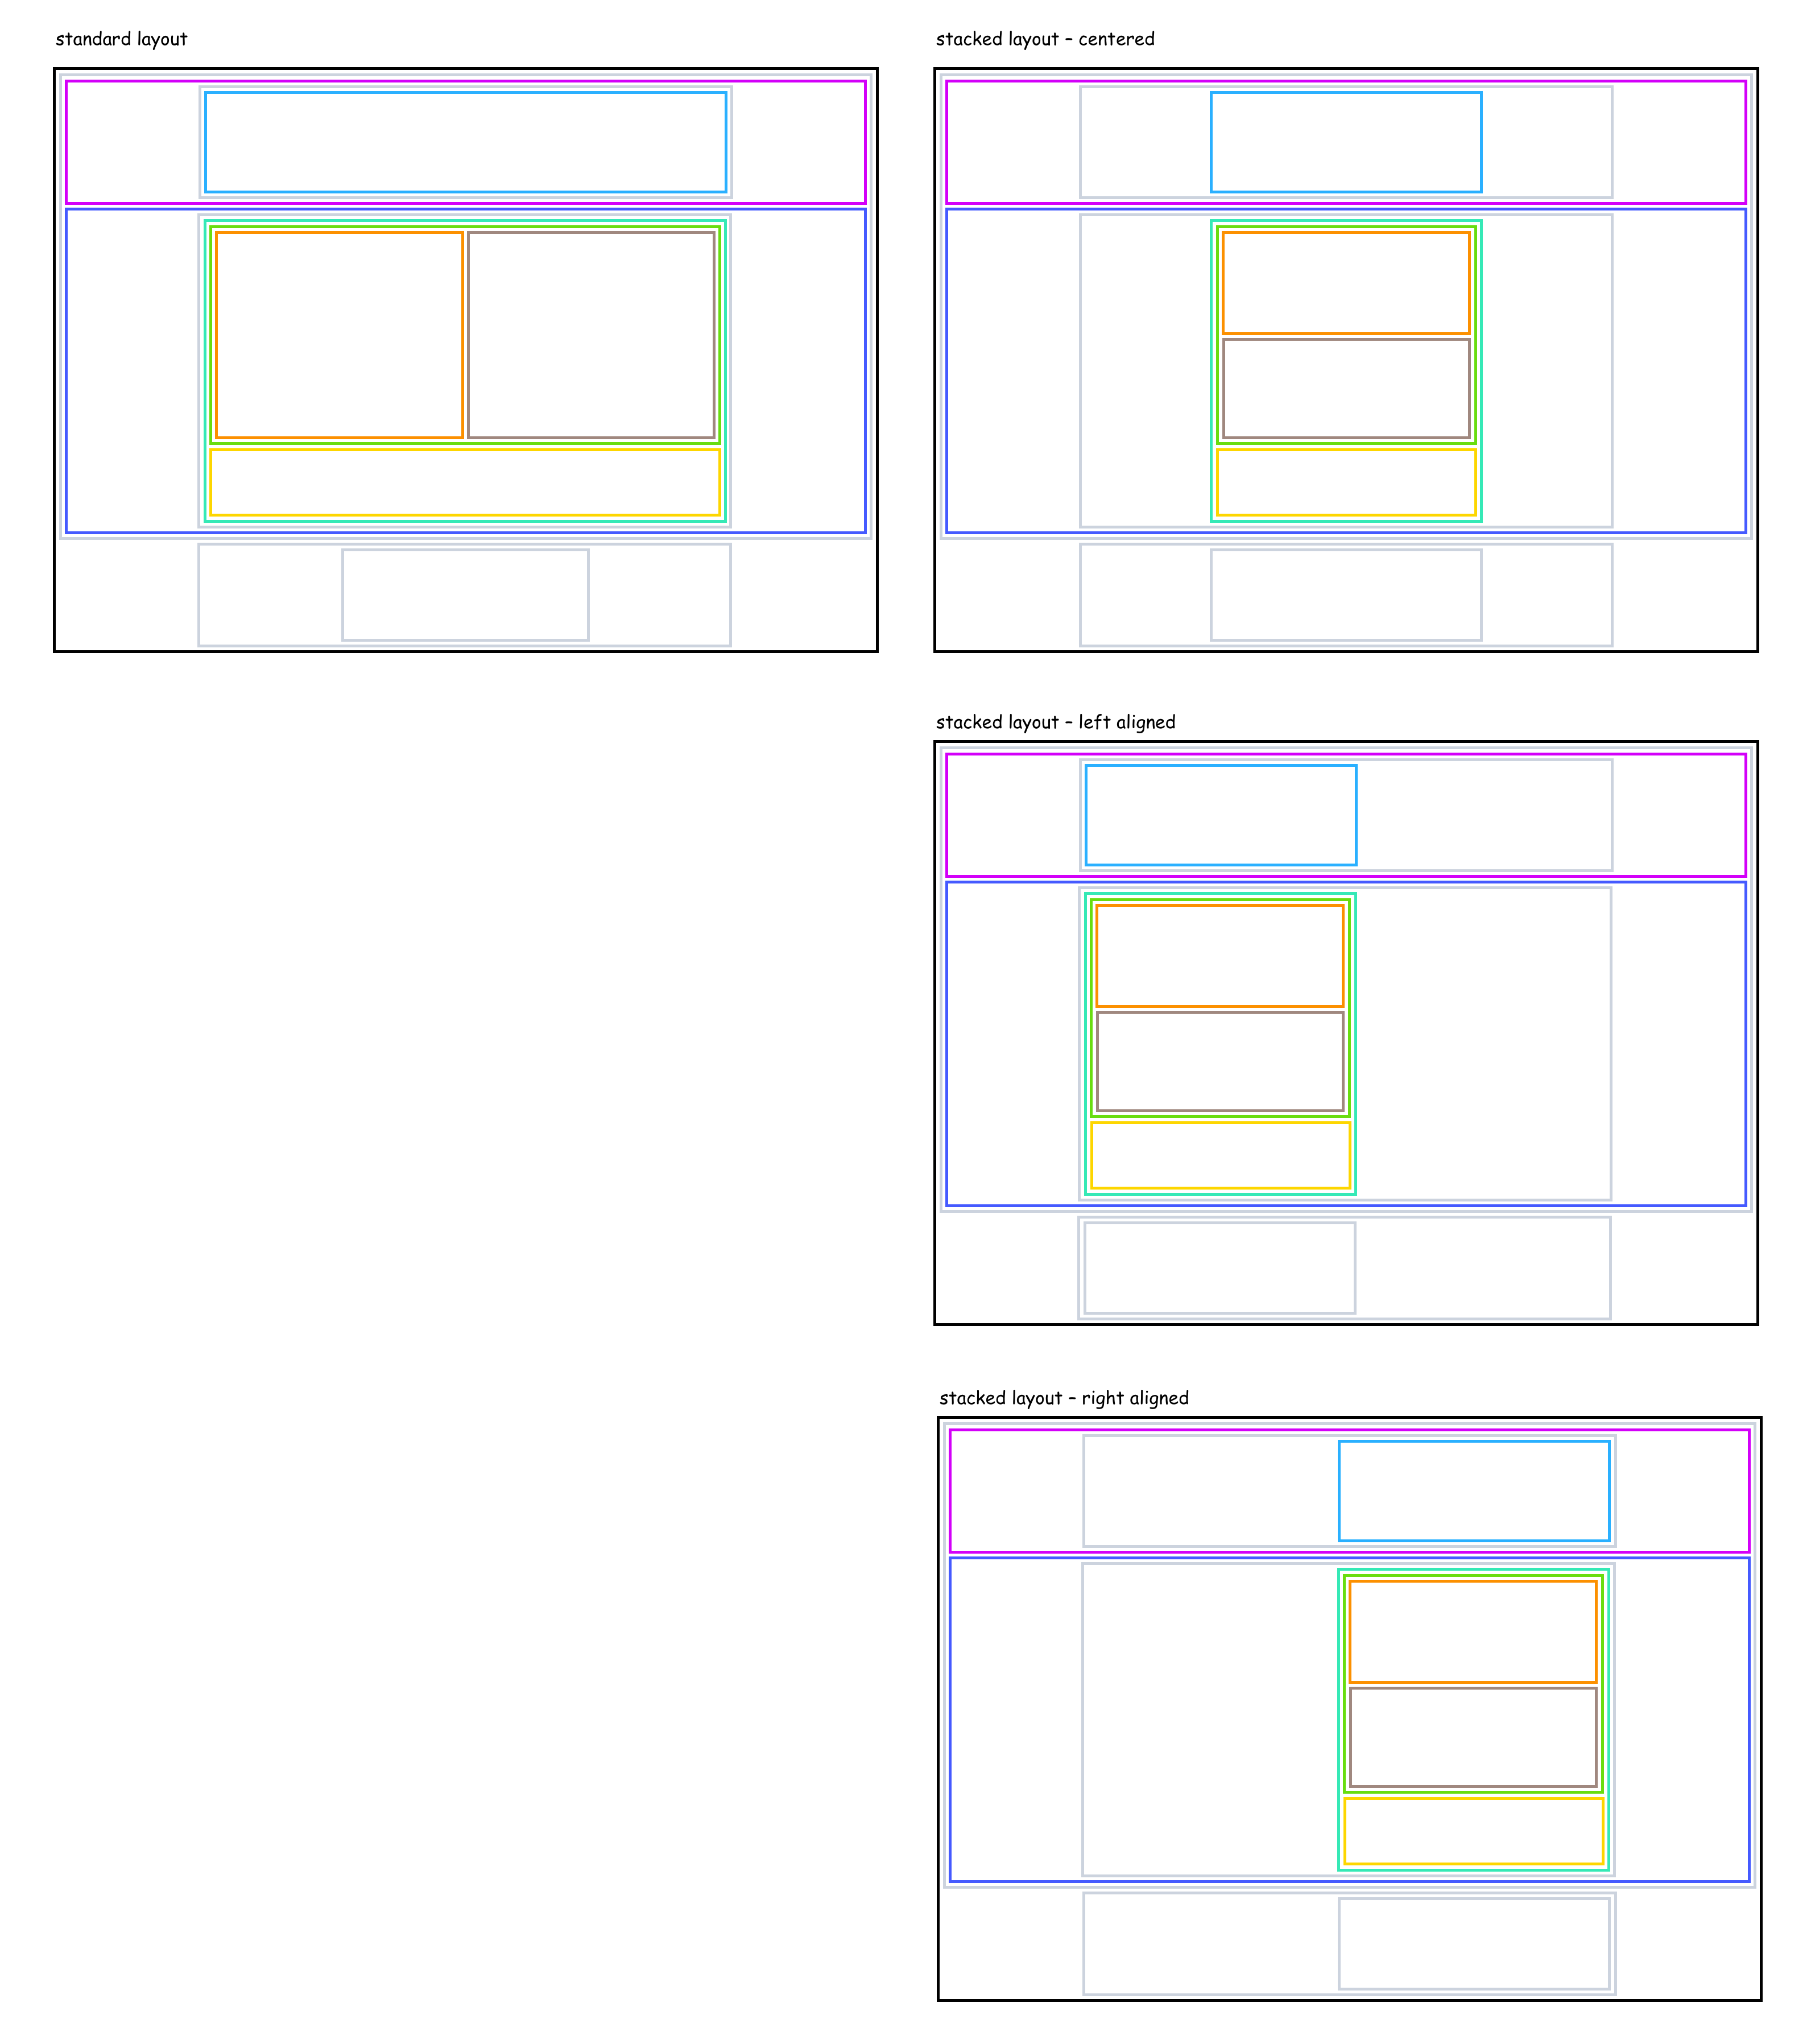 rough designs of various contribution form layout options